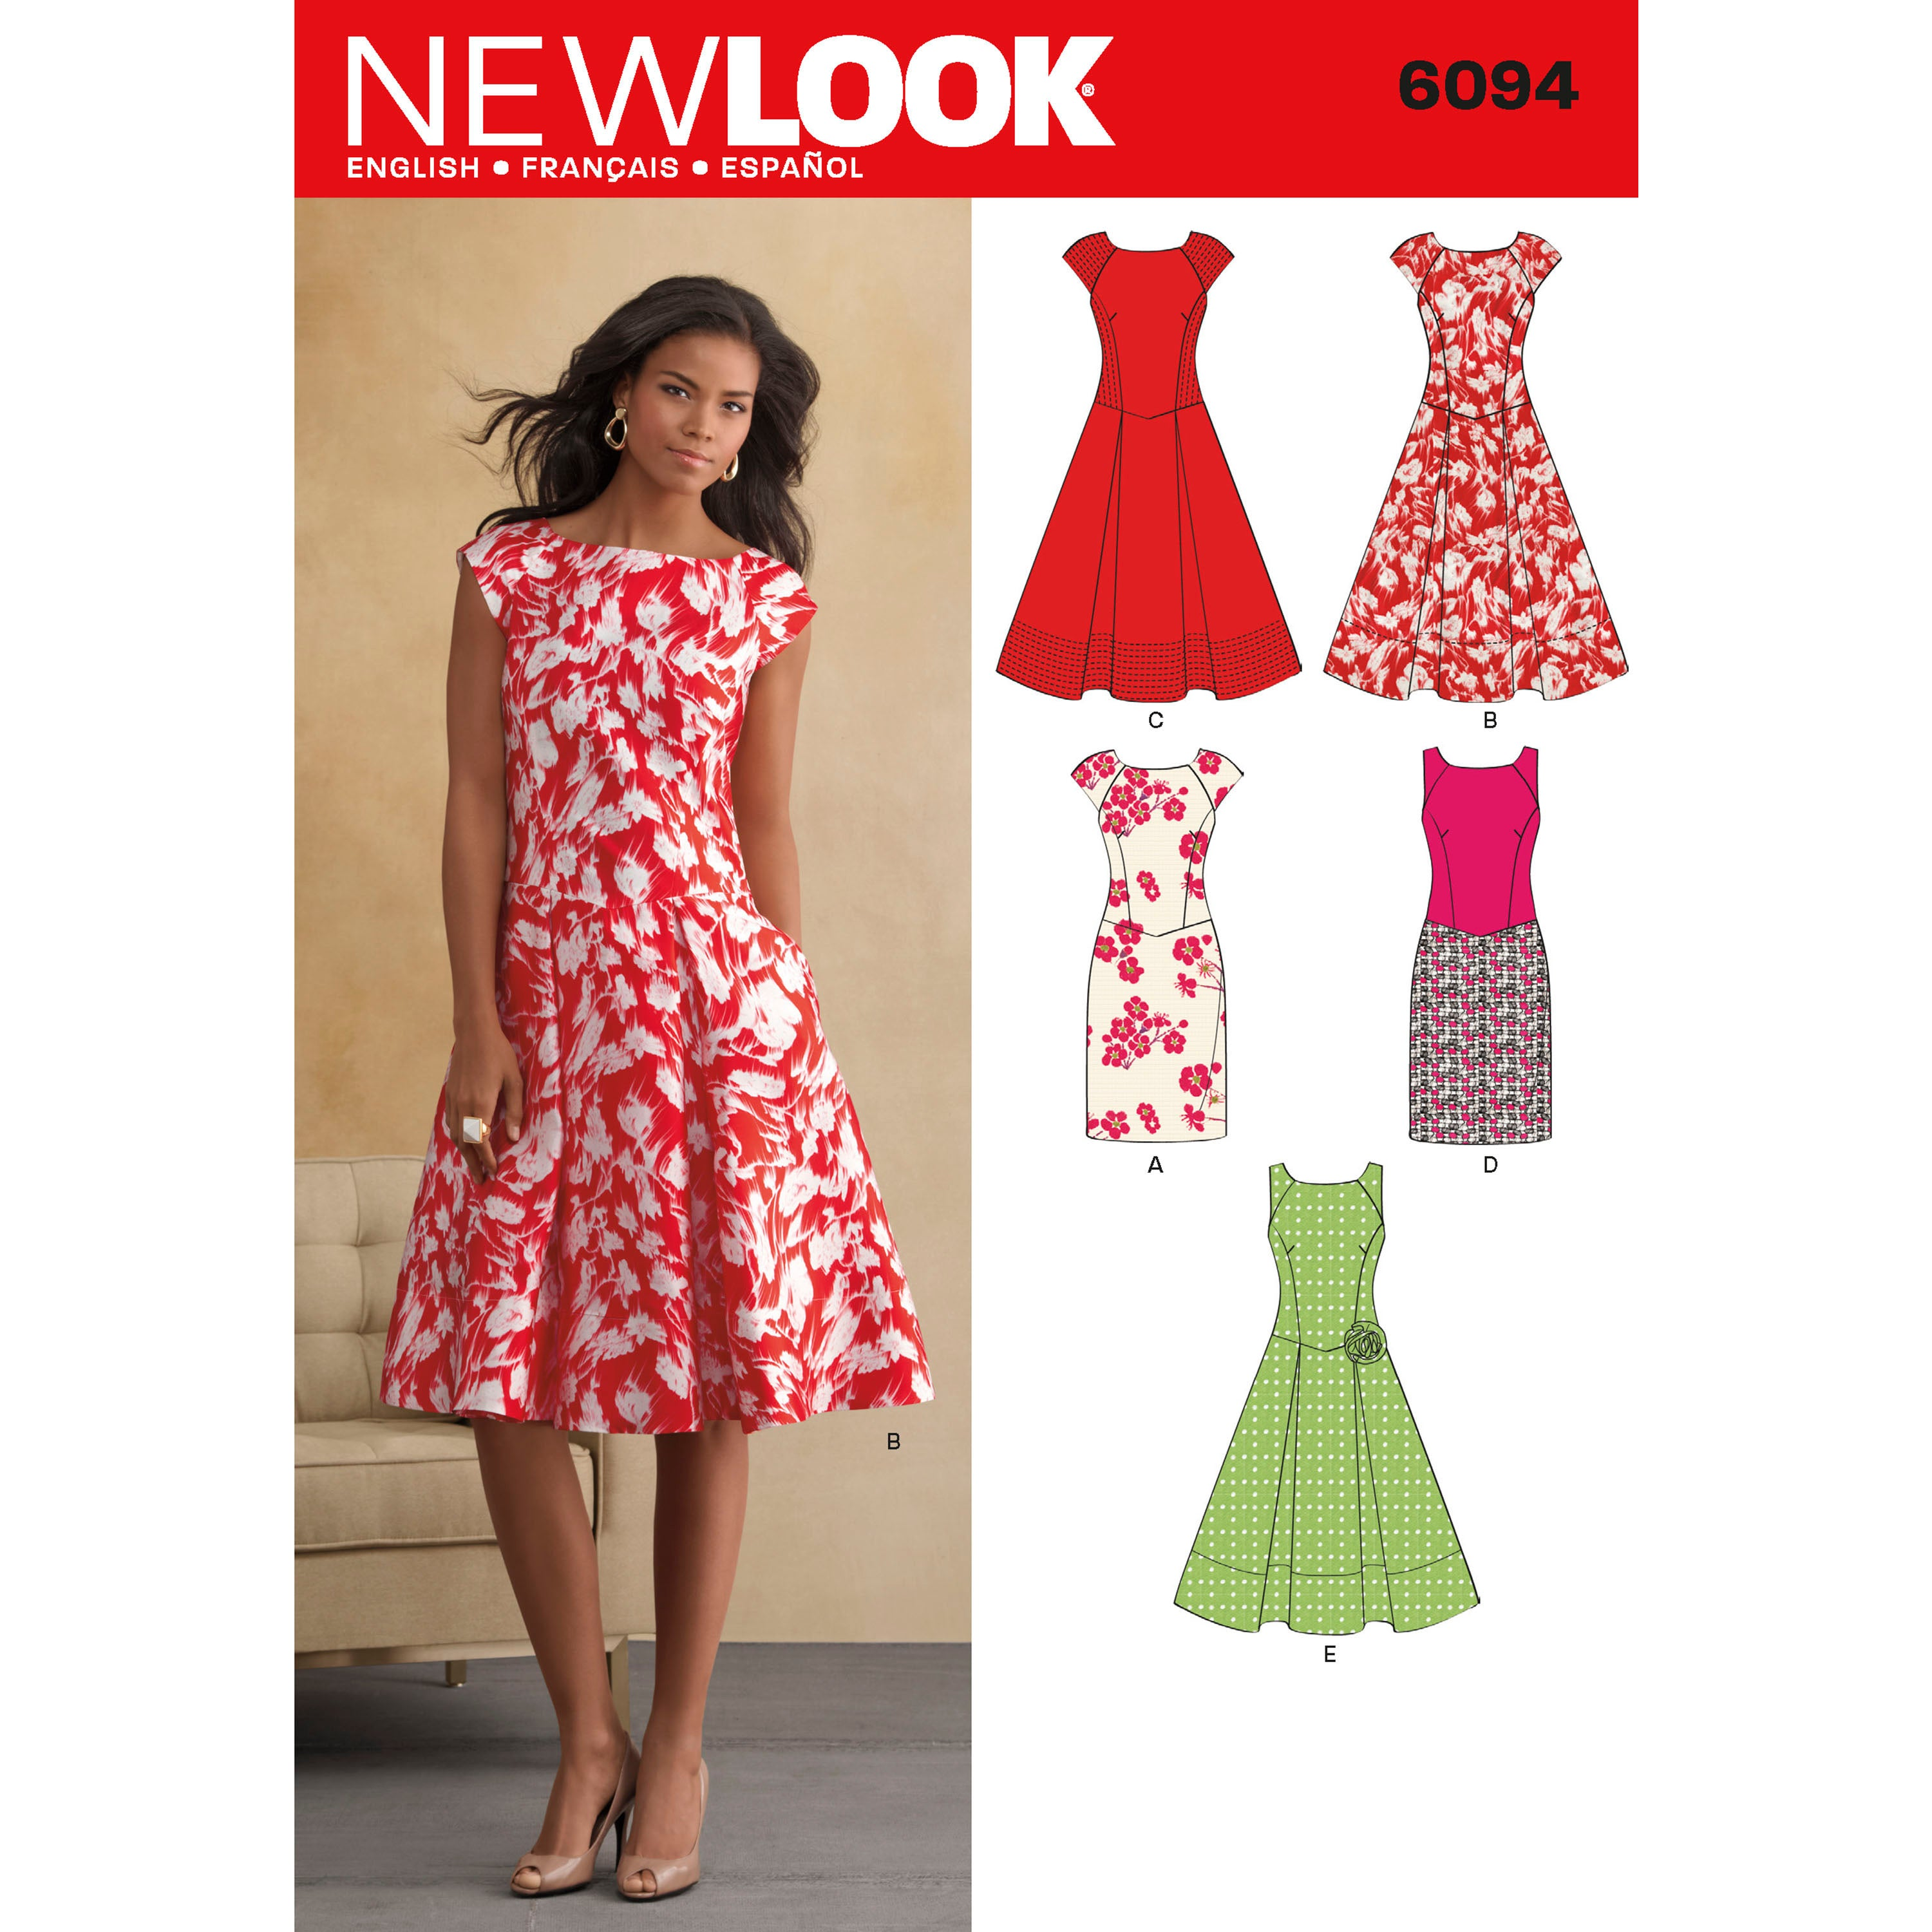 7ef5b95aec New Look Sewing Pattern 6094 - Misses' Dresses | Sewing Patterns ...